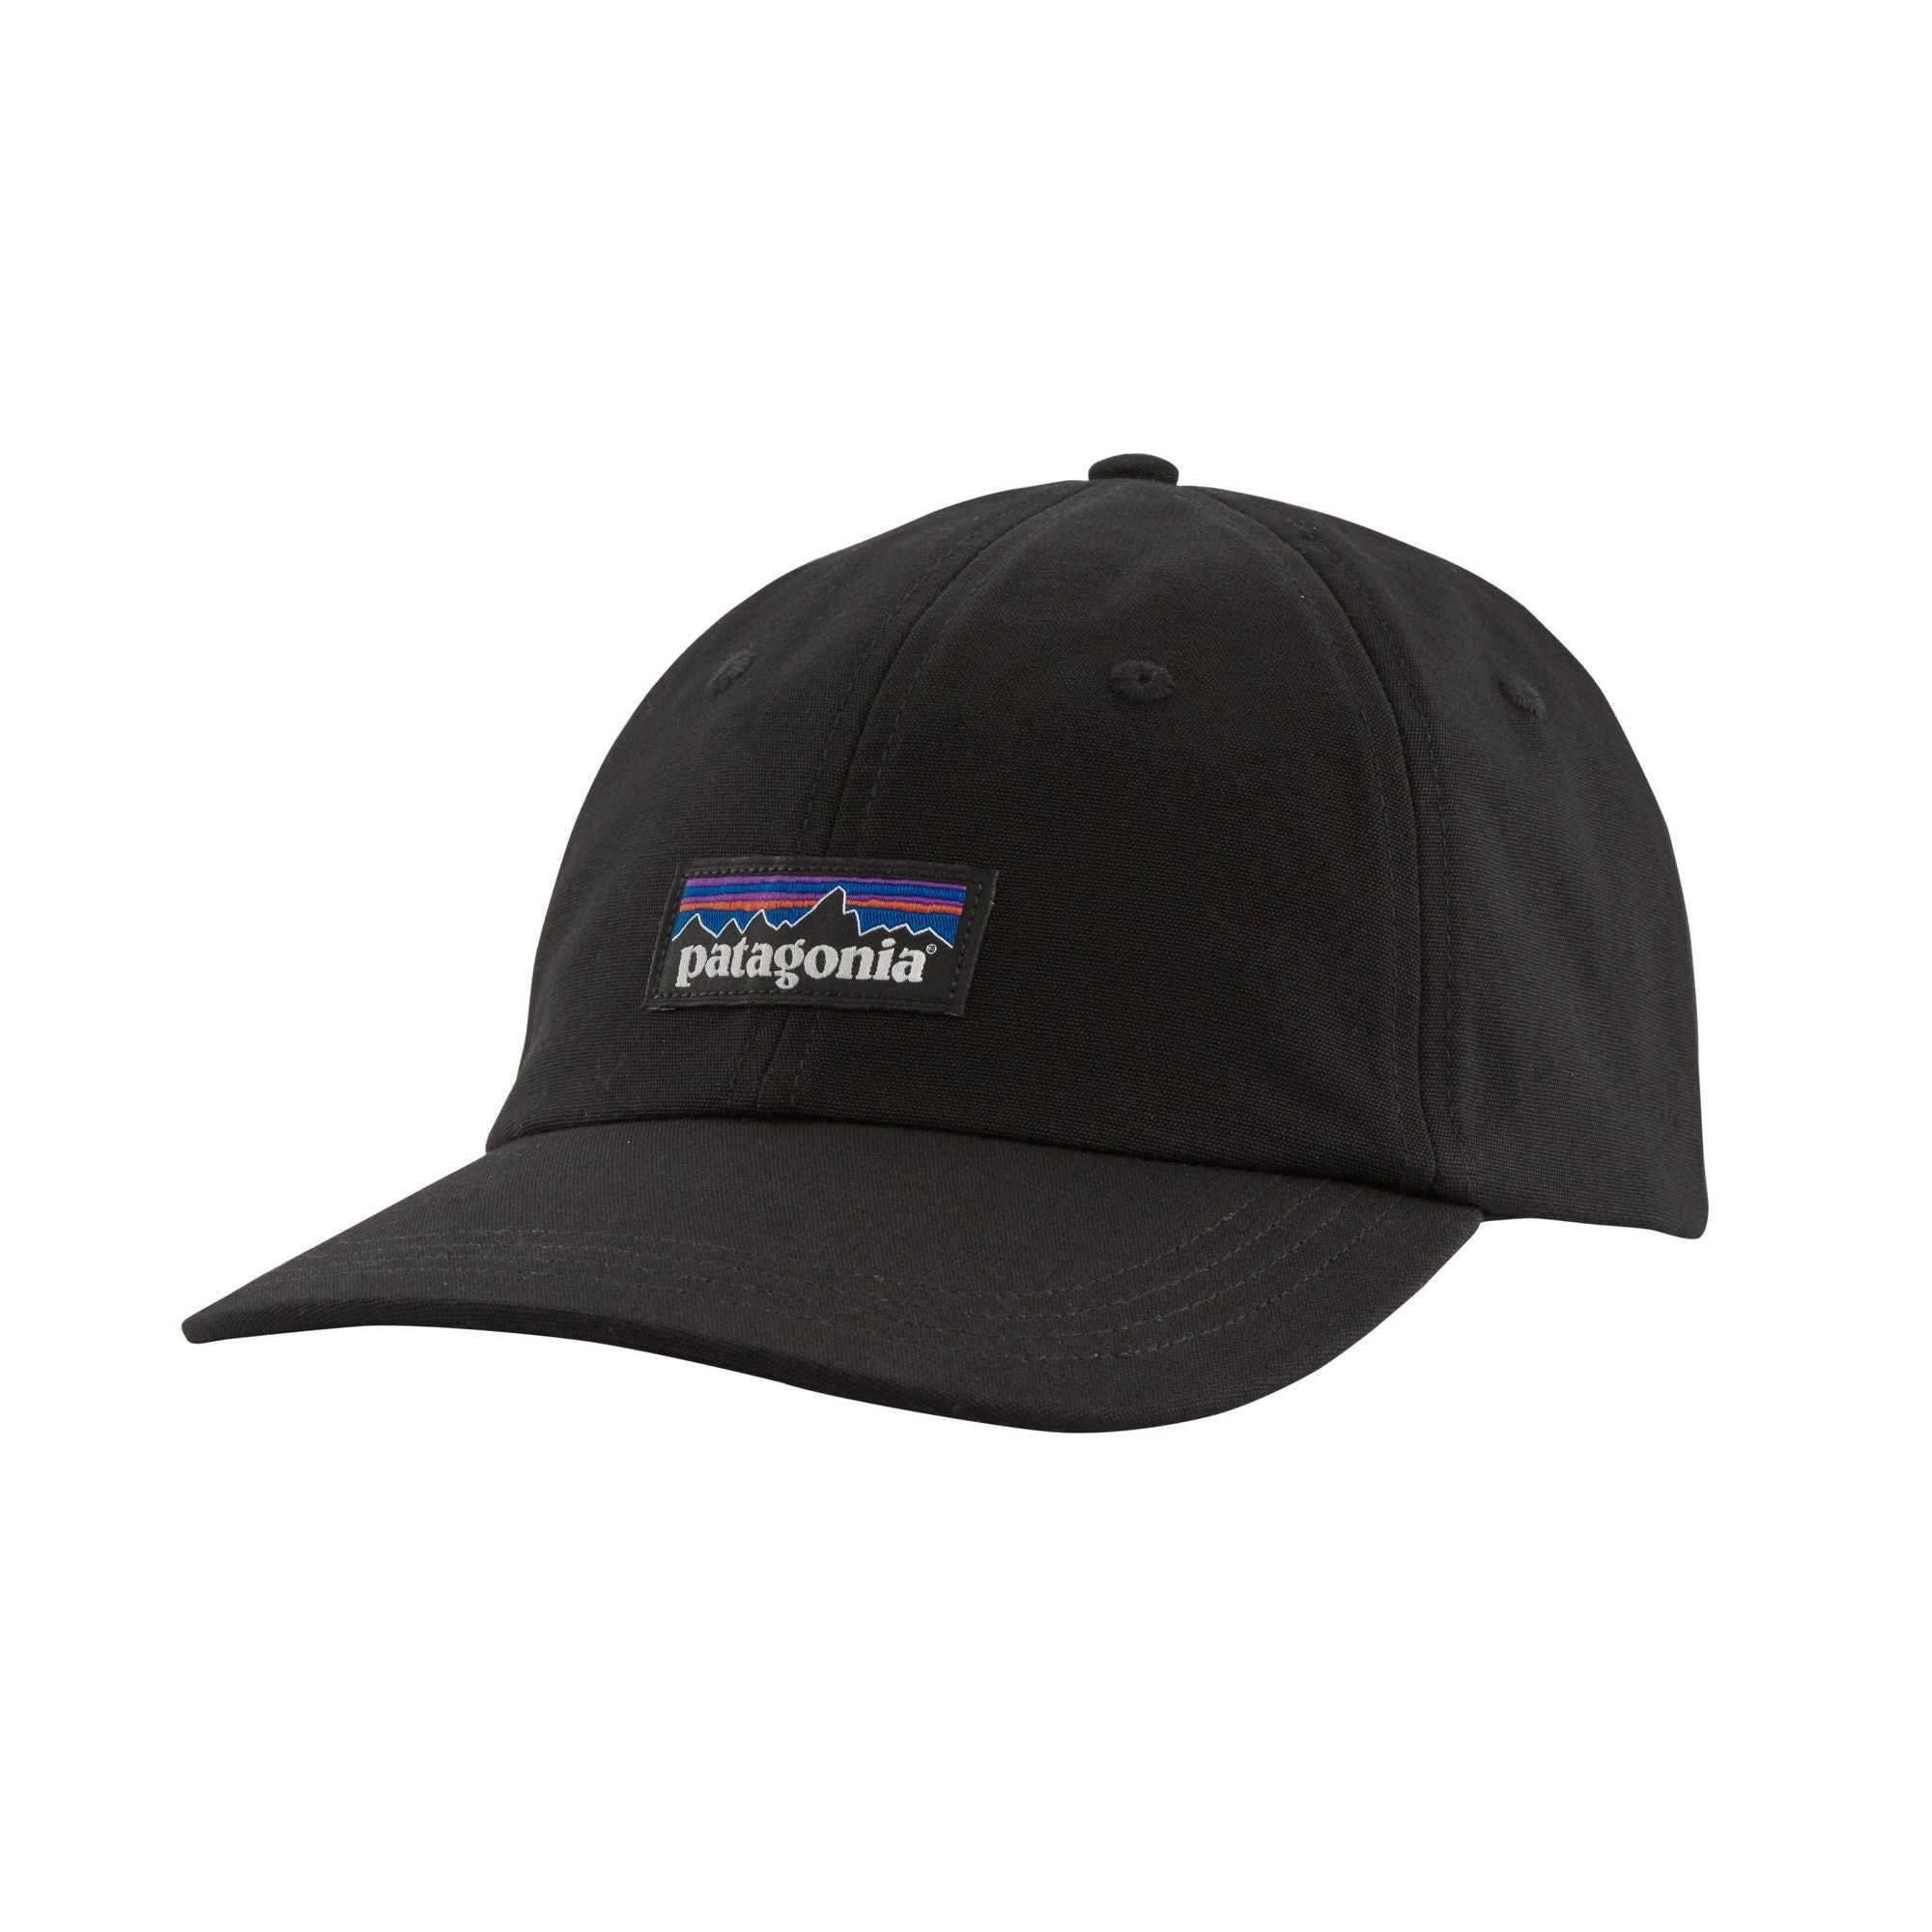 Patagonia P-6 Label Trad Cap - Black - Find Your Feet Australia Hobart Launceston Tasmania